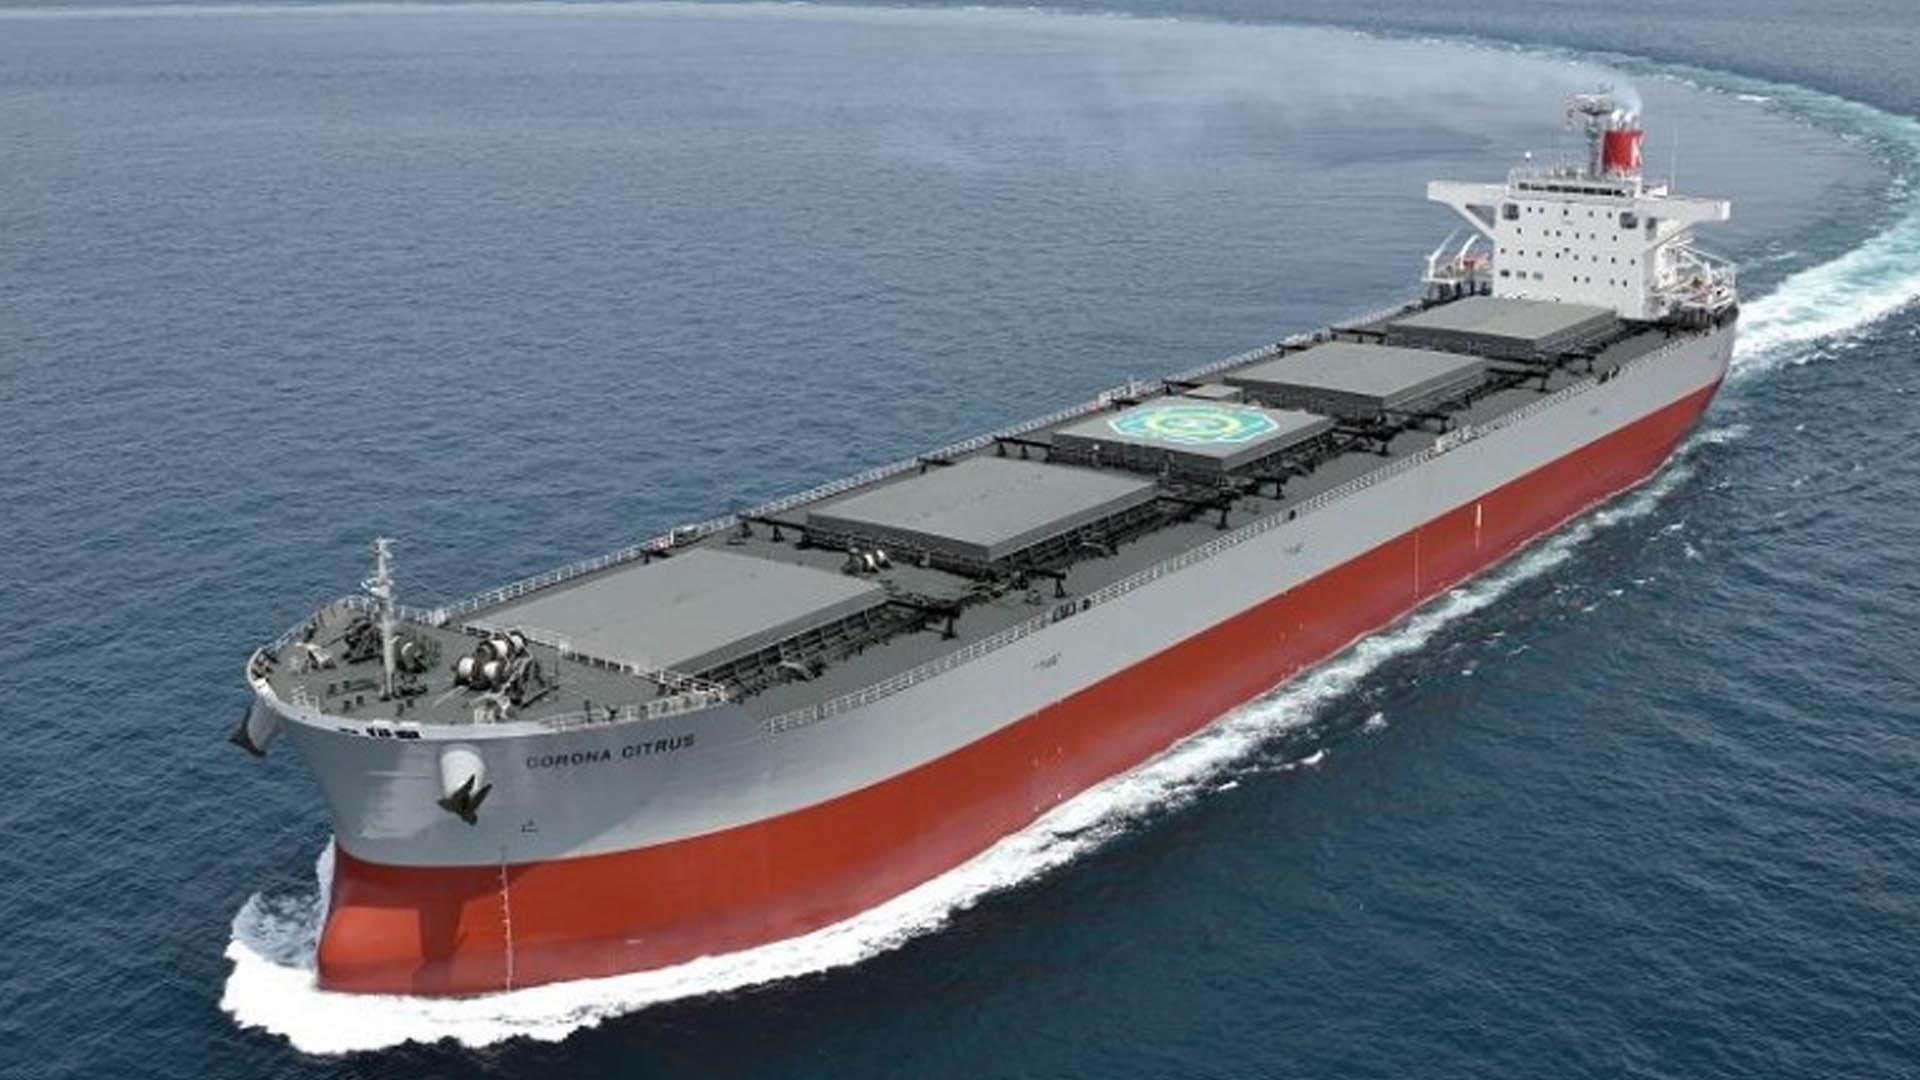 K Line Takes Delivery of New Corona Coal Carrier from Imabari